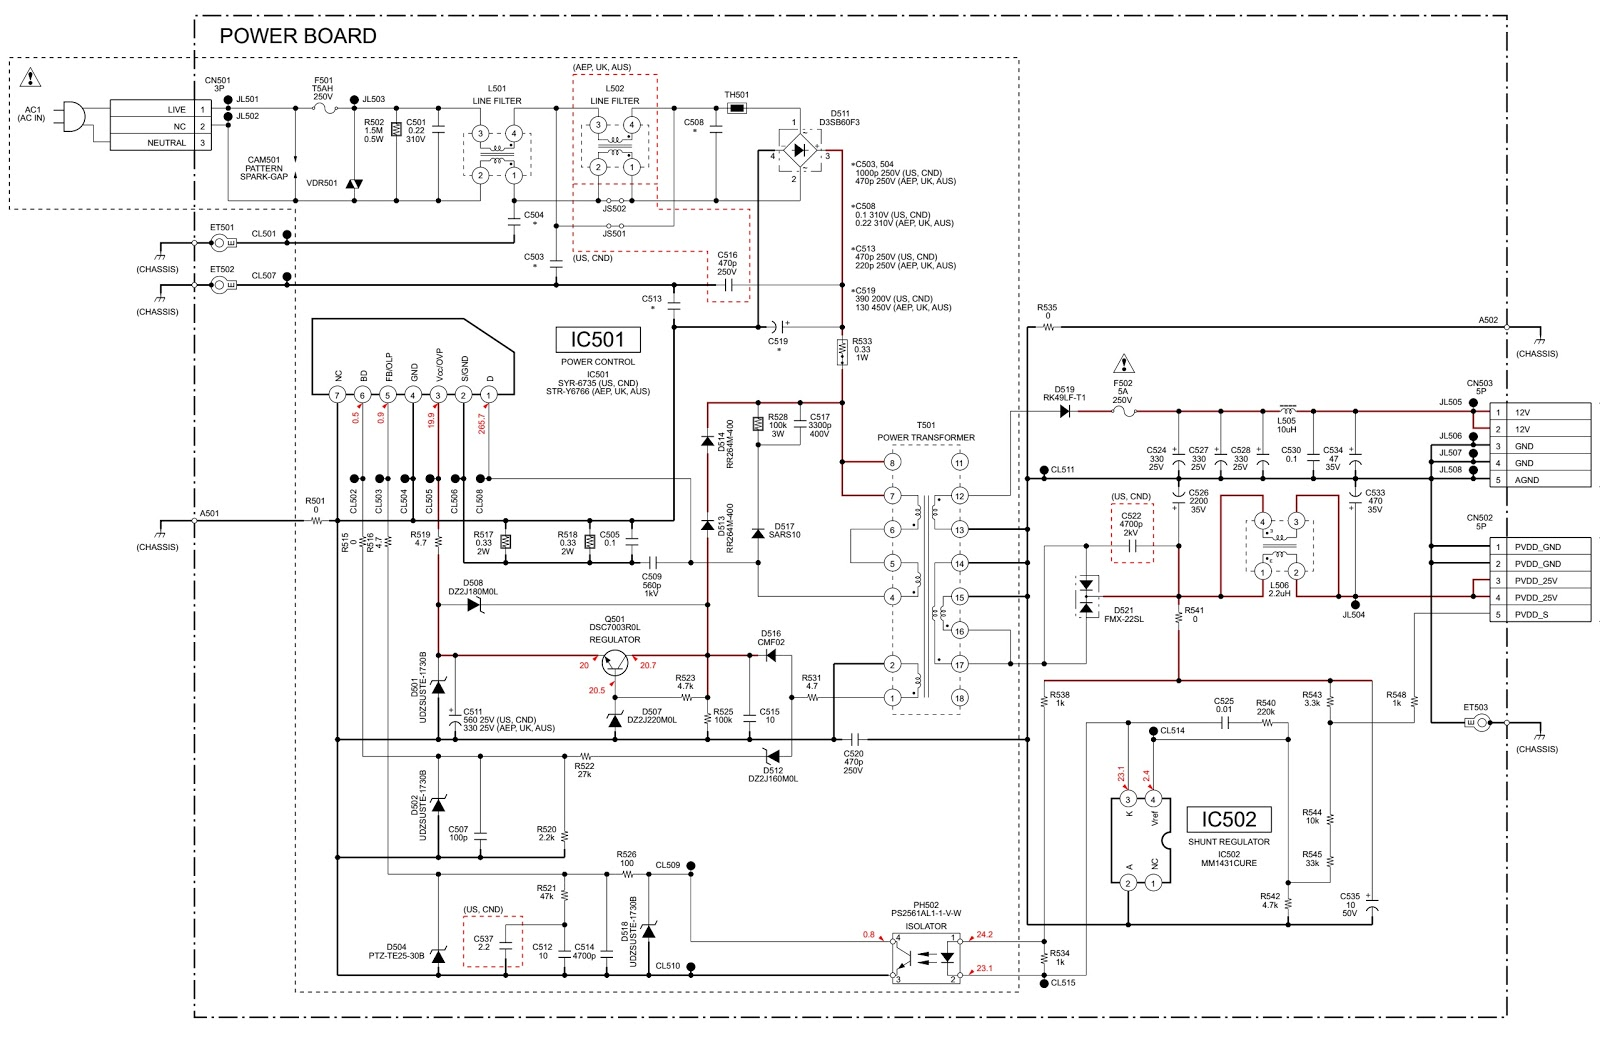 power supply and power amplifier circuit diagram pwb [ 1600 x 1050 Pixel ]